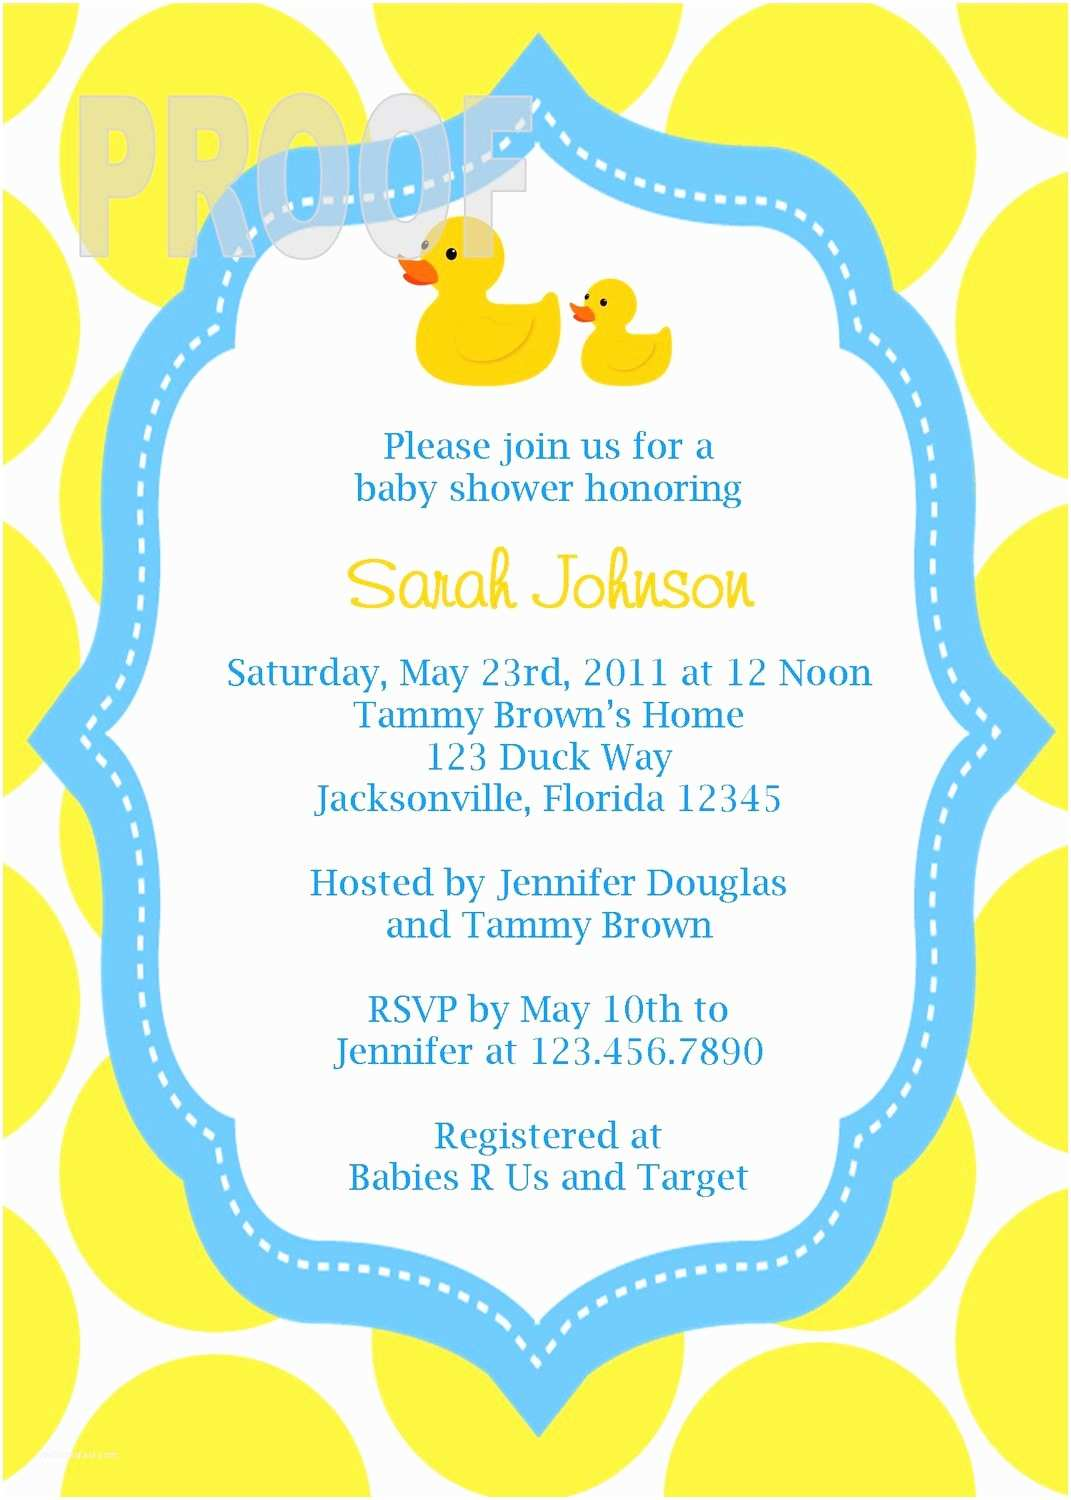 Rubber Duck Baby Shower Invitations Adorable Rubber Ducky Custom Baby Shower Invitation